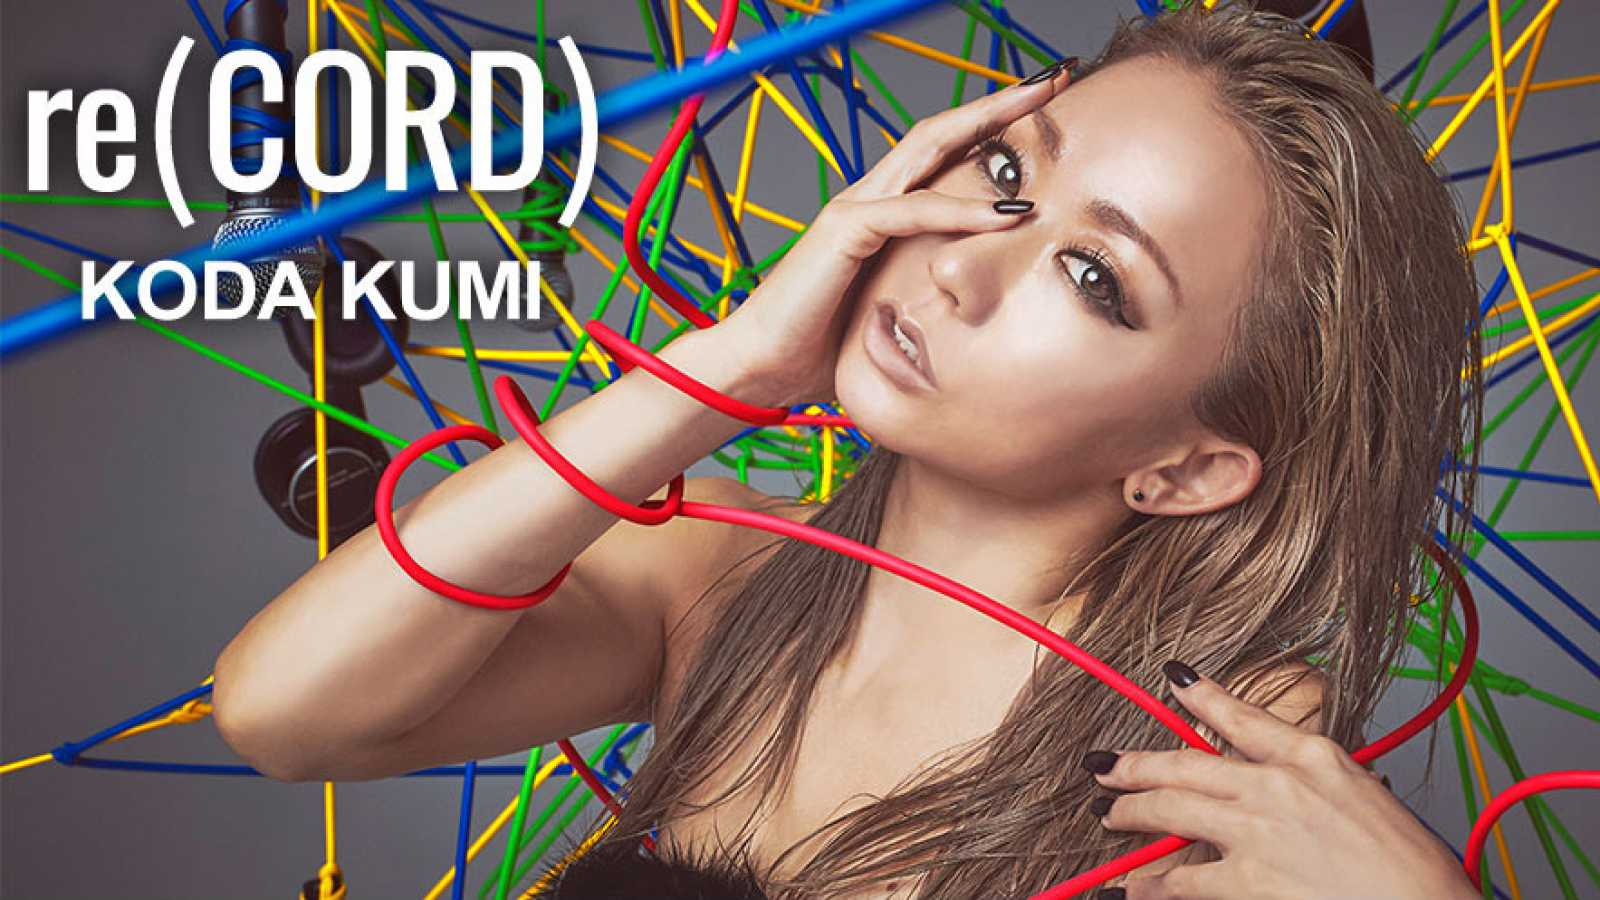 Kumi Koda en route pour un 16e album © All Rights Reserved